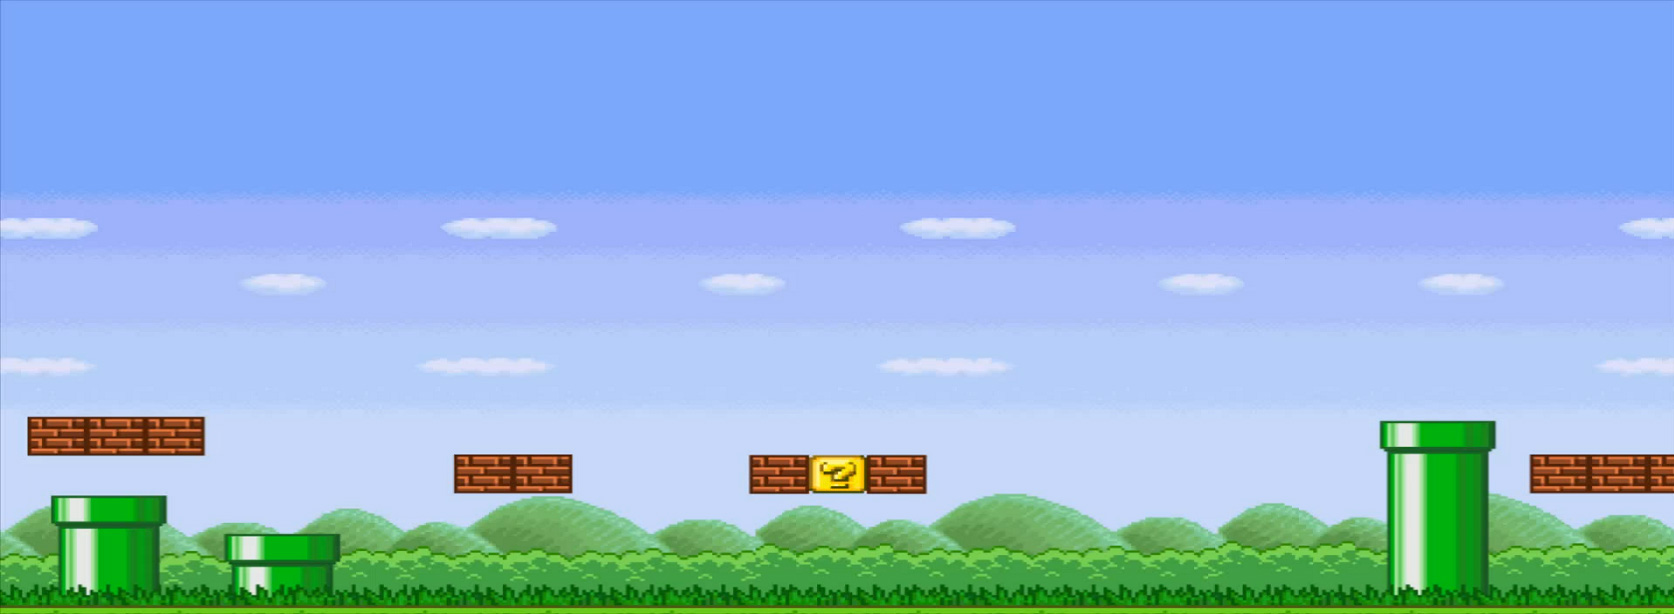 mario background png #9